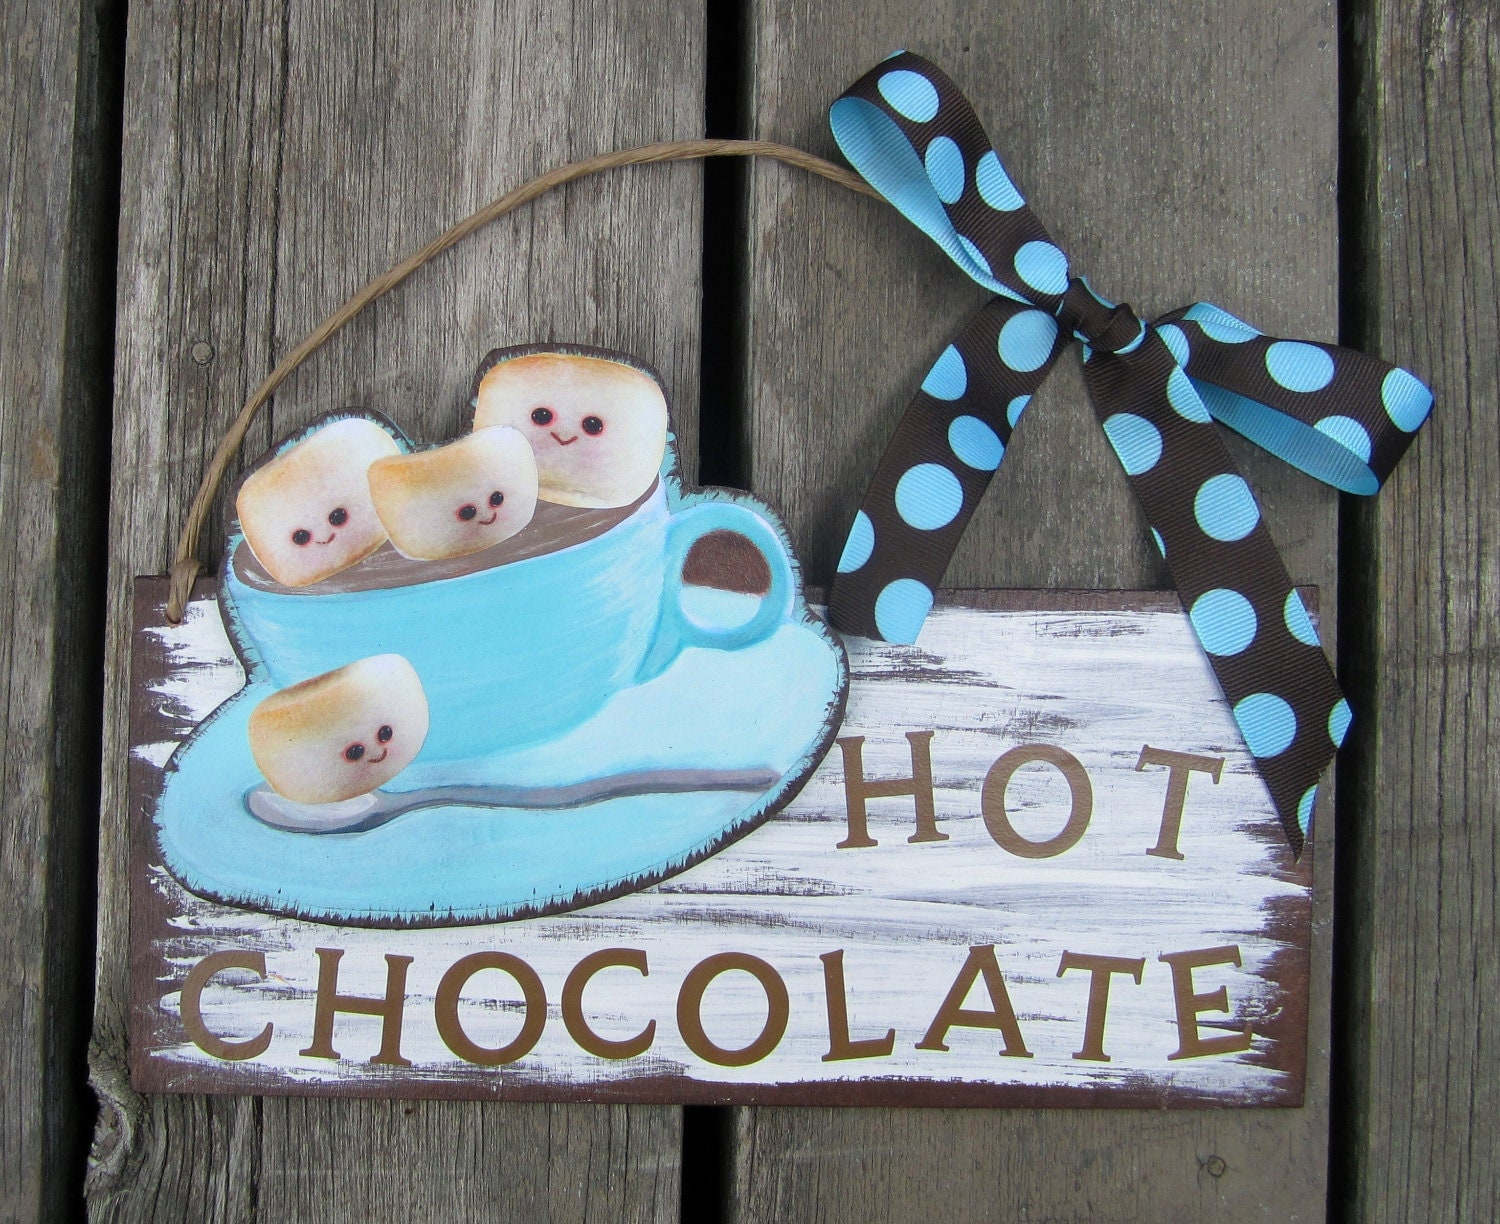 Hot Chocolate Marshmellows Nursery Bedroom Wall hanging Wood Sign by STORYTIME ART